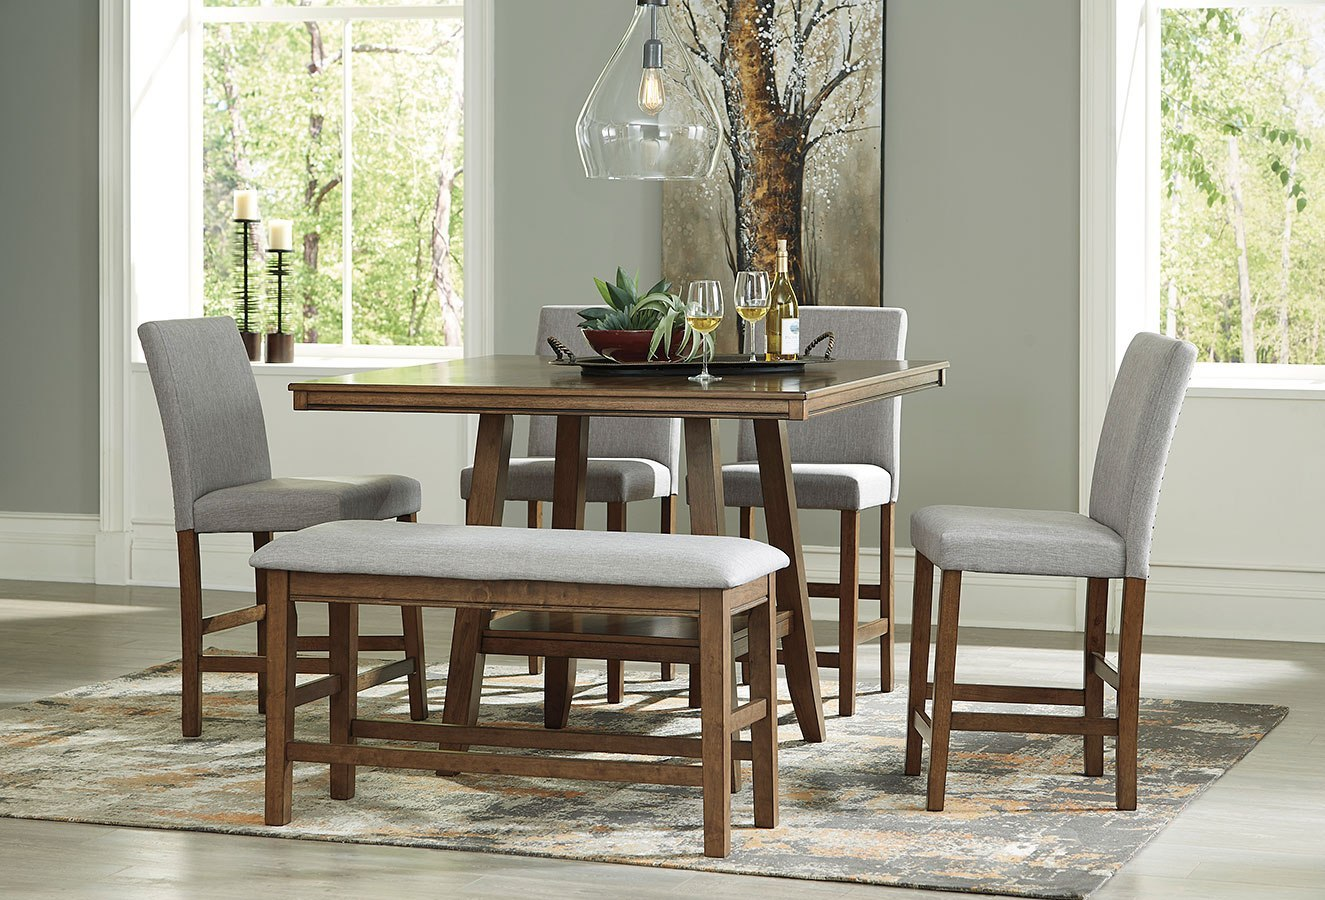 Glennox Counter Height Dining Set W Bench Benchcraft Furniture Cart